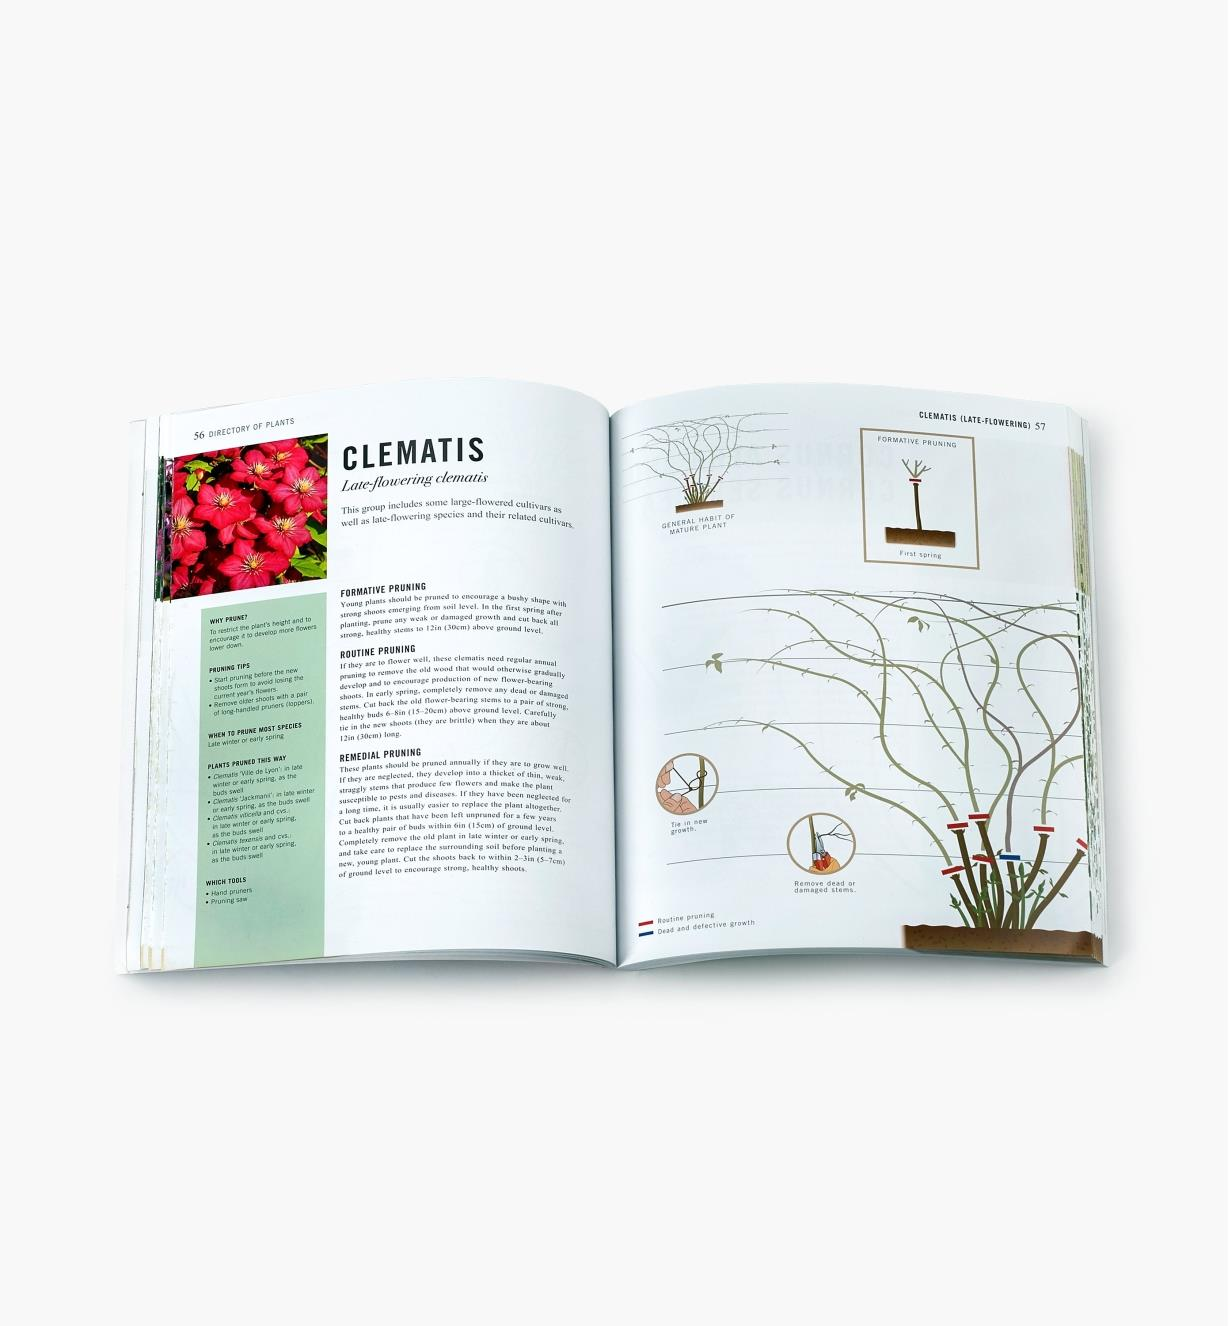 Two-page spread in Pruning Simplified with text and diagrams showing how to prune clematis plants